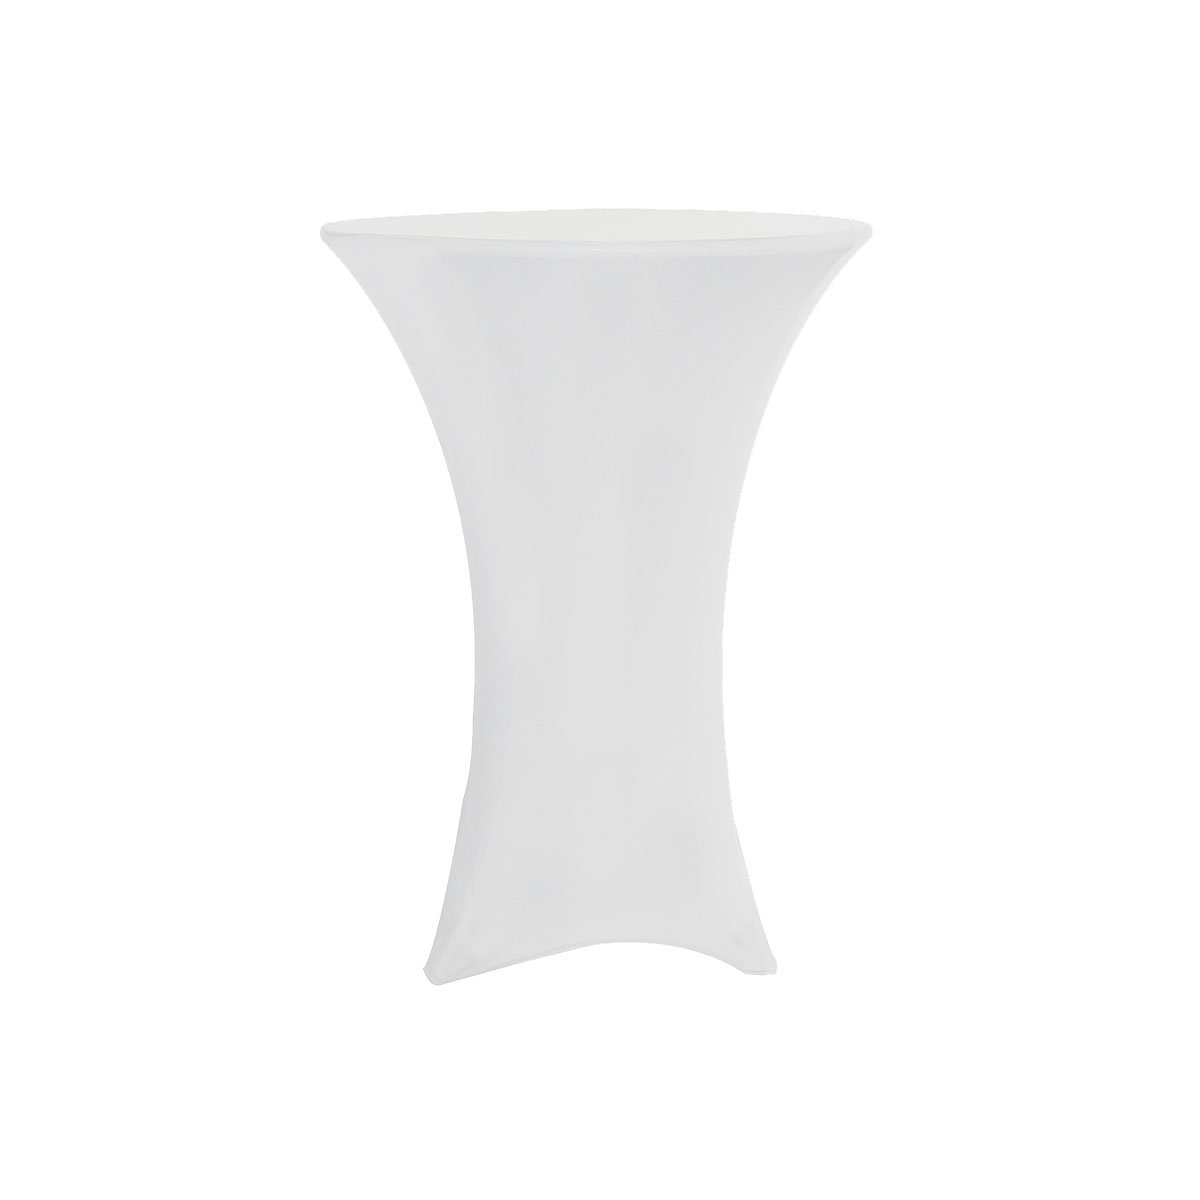 Your Chair Covers - 30 Inch Highboy Cocktail Round Stretch Spandex Table Covers White